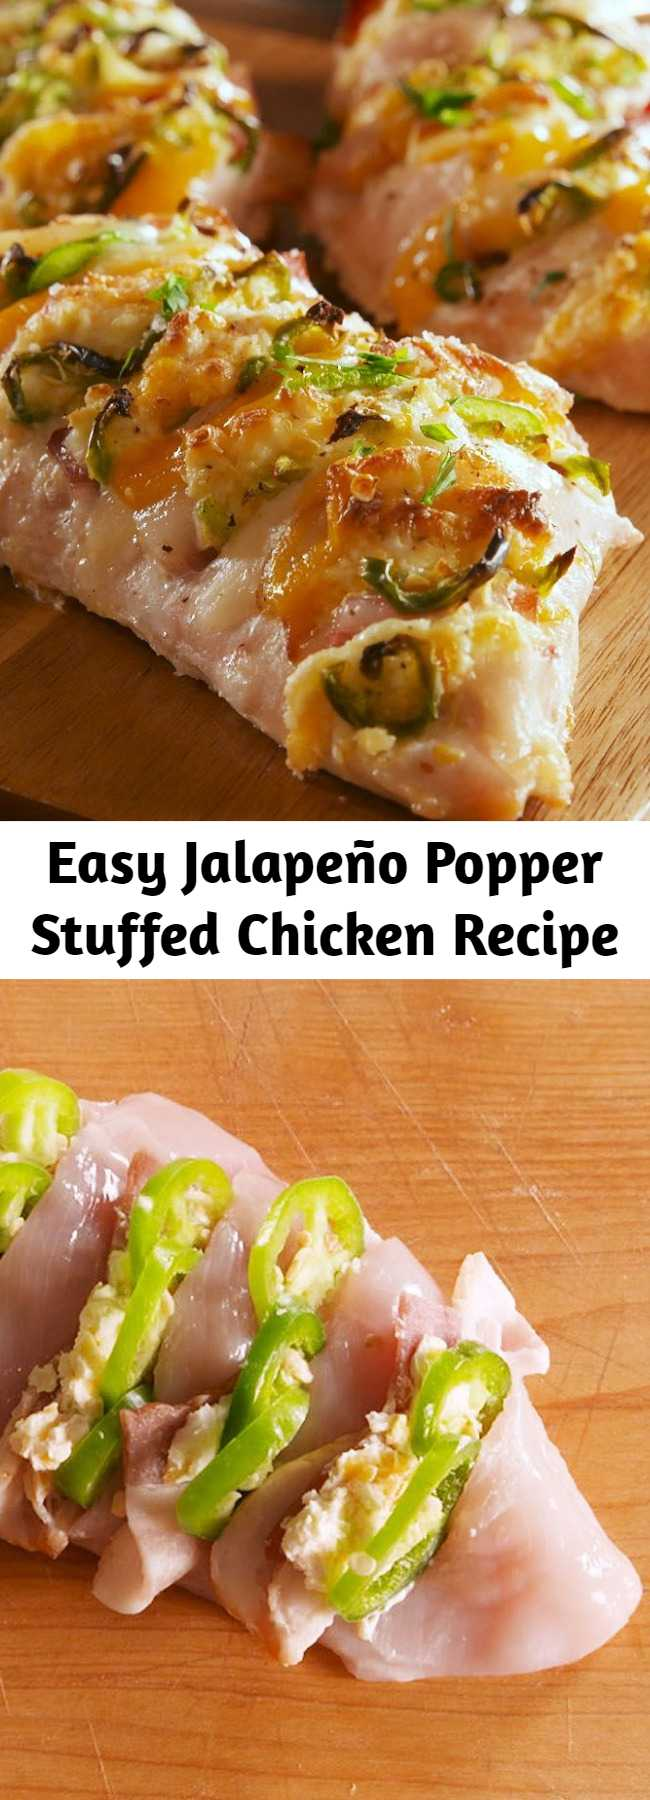 Easy Jalapeño Popper Stuffed Chicken Recipe - If you love jalapeño poppers, this is the chicken dinner of your DREAMS. With all the ingredients evenly distributed, every bite is perfect. #chickenrecipes #jalapenopoppers #jalapeno #spicy #healthyrecipes #easyrecipes #easychickenrecipes #dinner